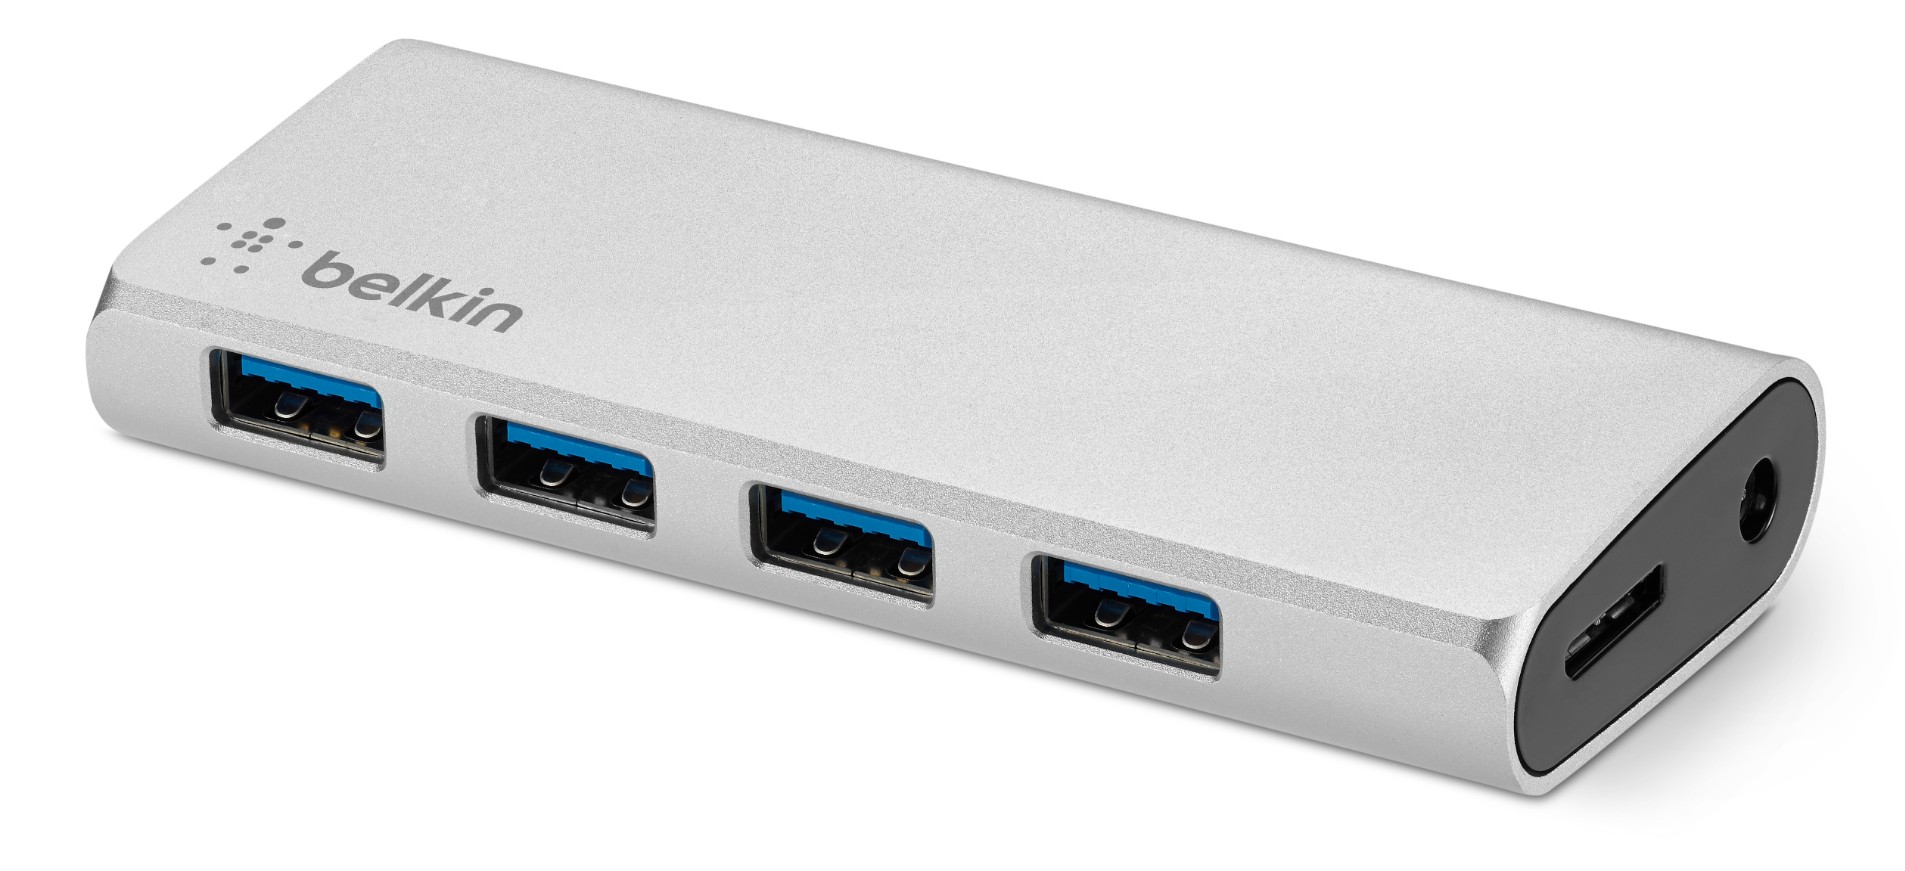 Sforum - The latest technology information page usb-a Then USB Type-C will be alone